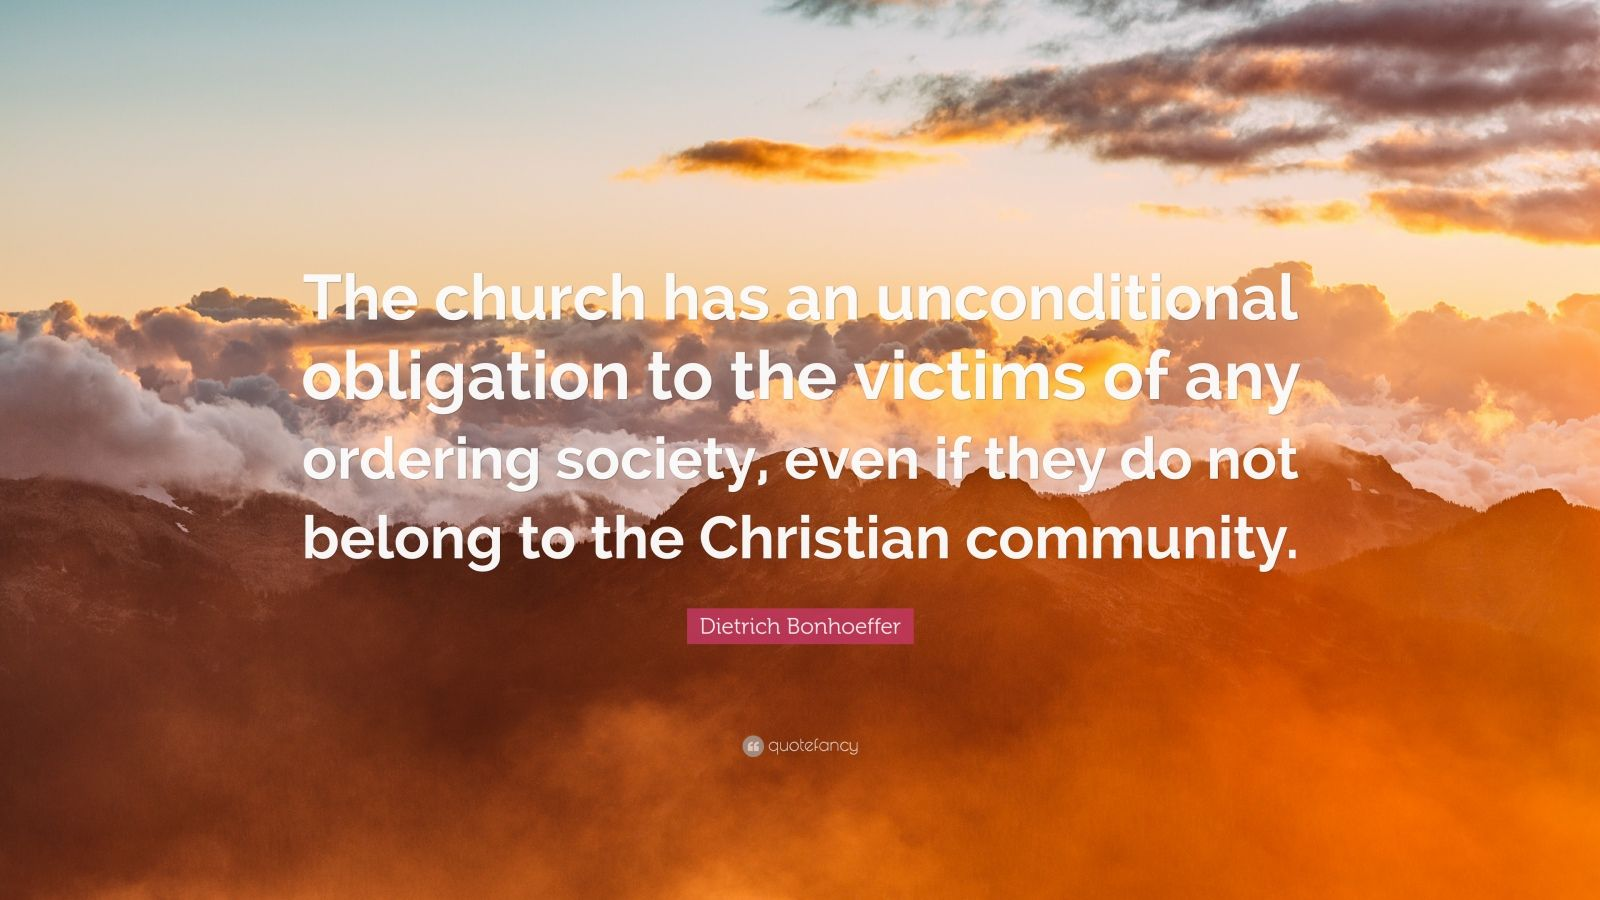 """Dietrich Bonhoeffer Quote: """"The church has an unconditional obligation to the victims of any ordering society, even if they do not belong to the Christian community."""""""